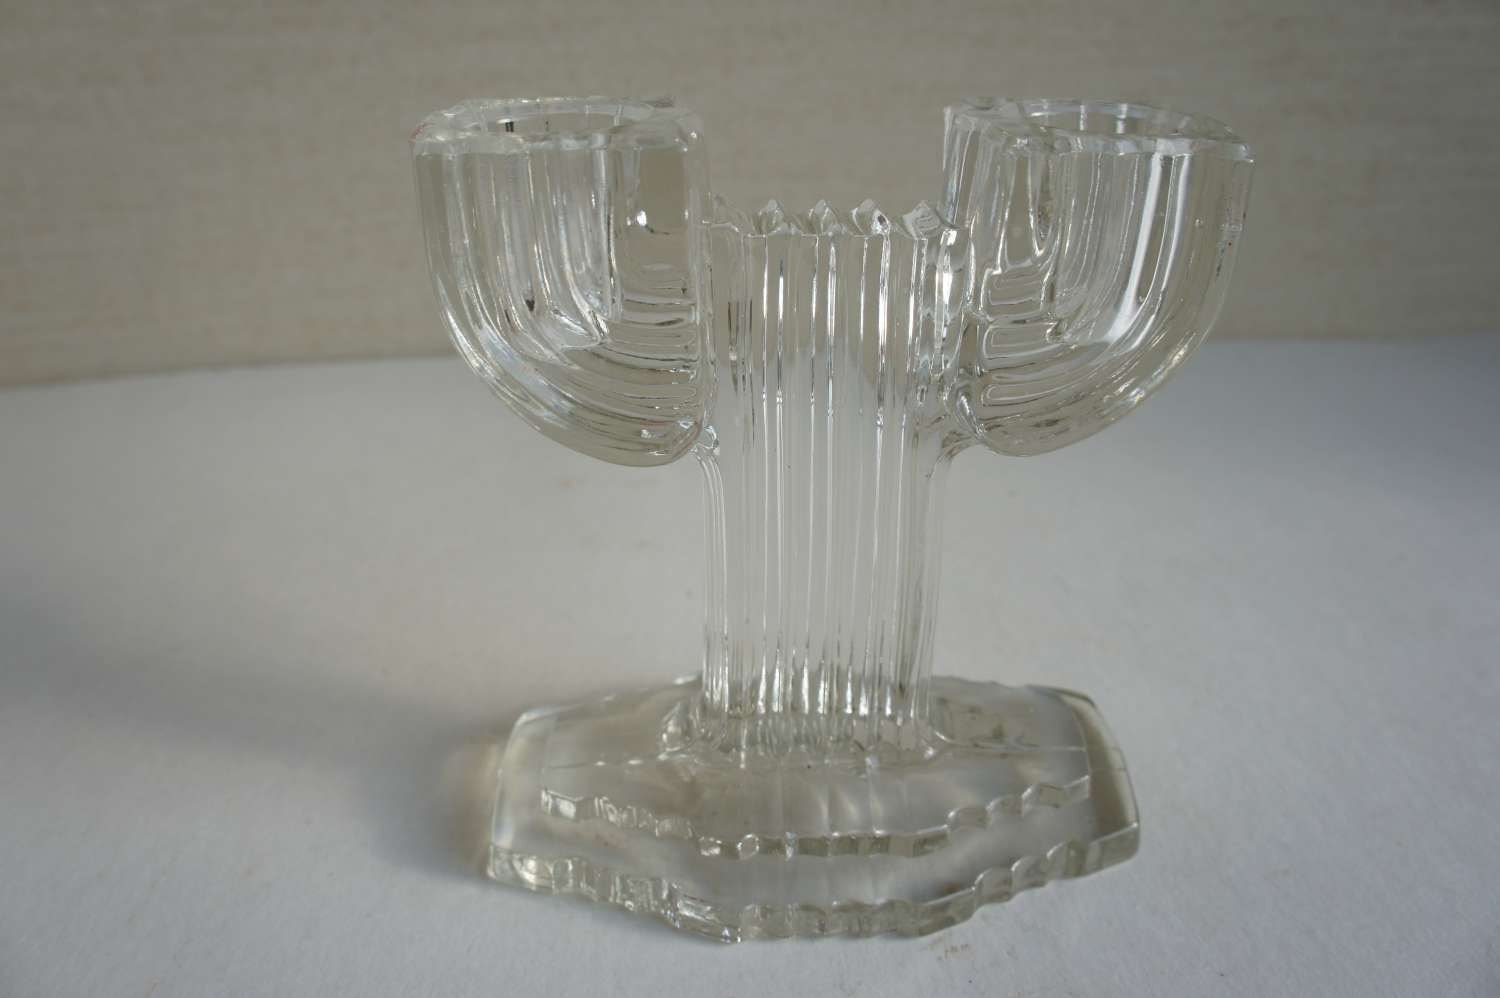 Vintage Glass Art Deco Candle Holder: Art Deco Depression Glass Candle Holder Queen Mary